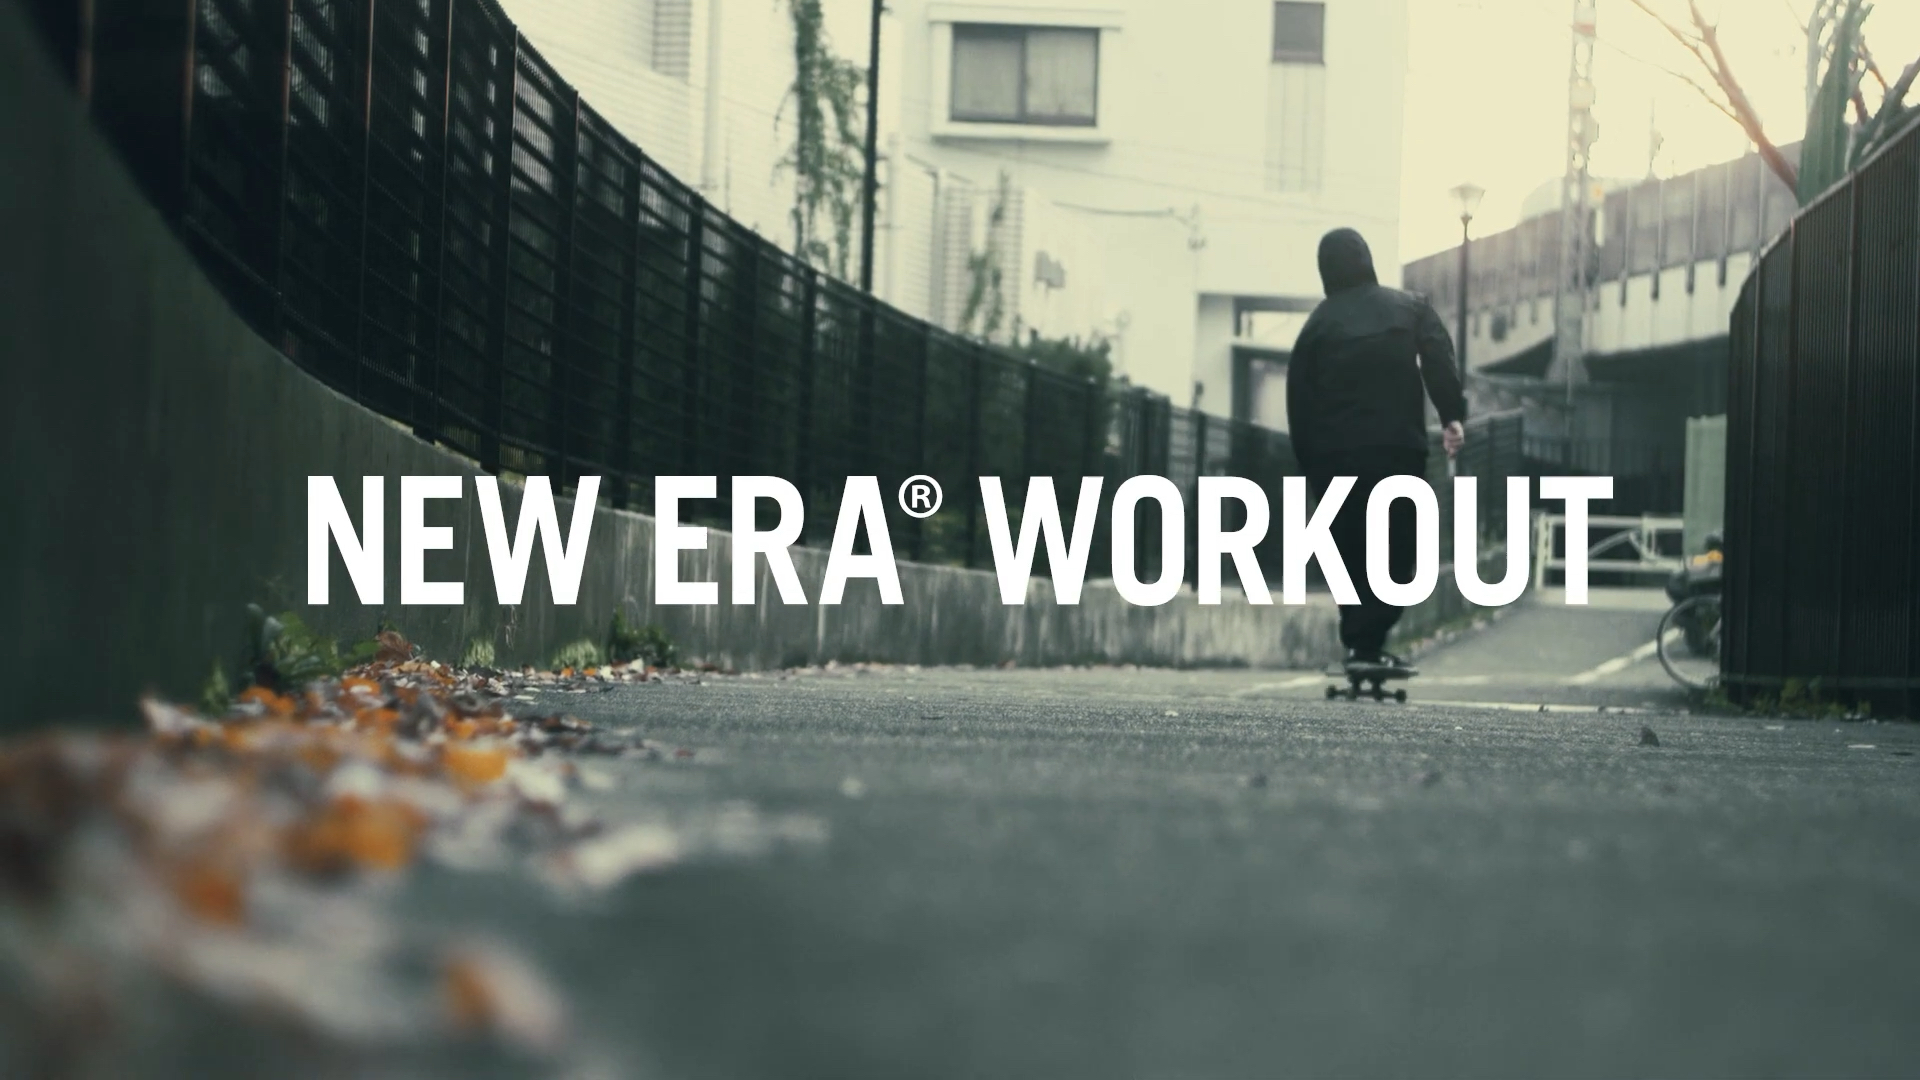 NEW ERA WORKOUT  - Taku Hiraoka -